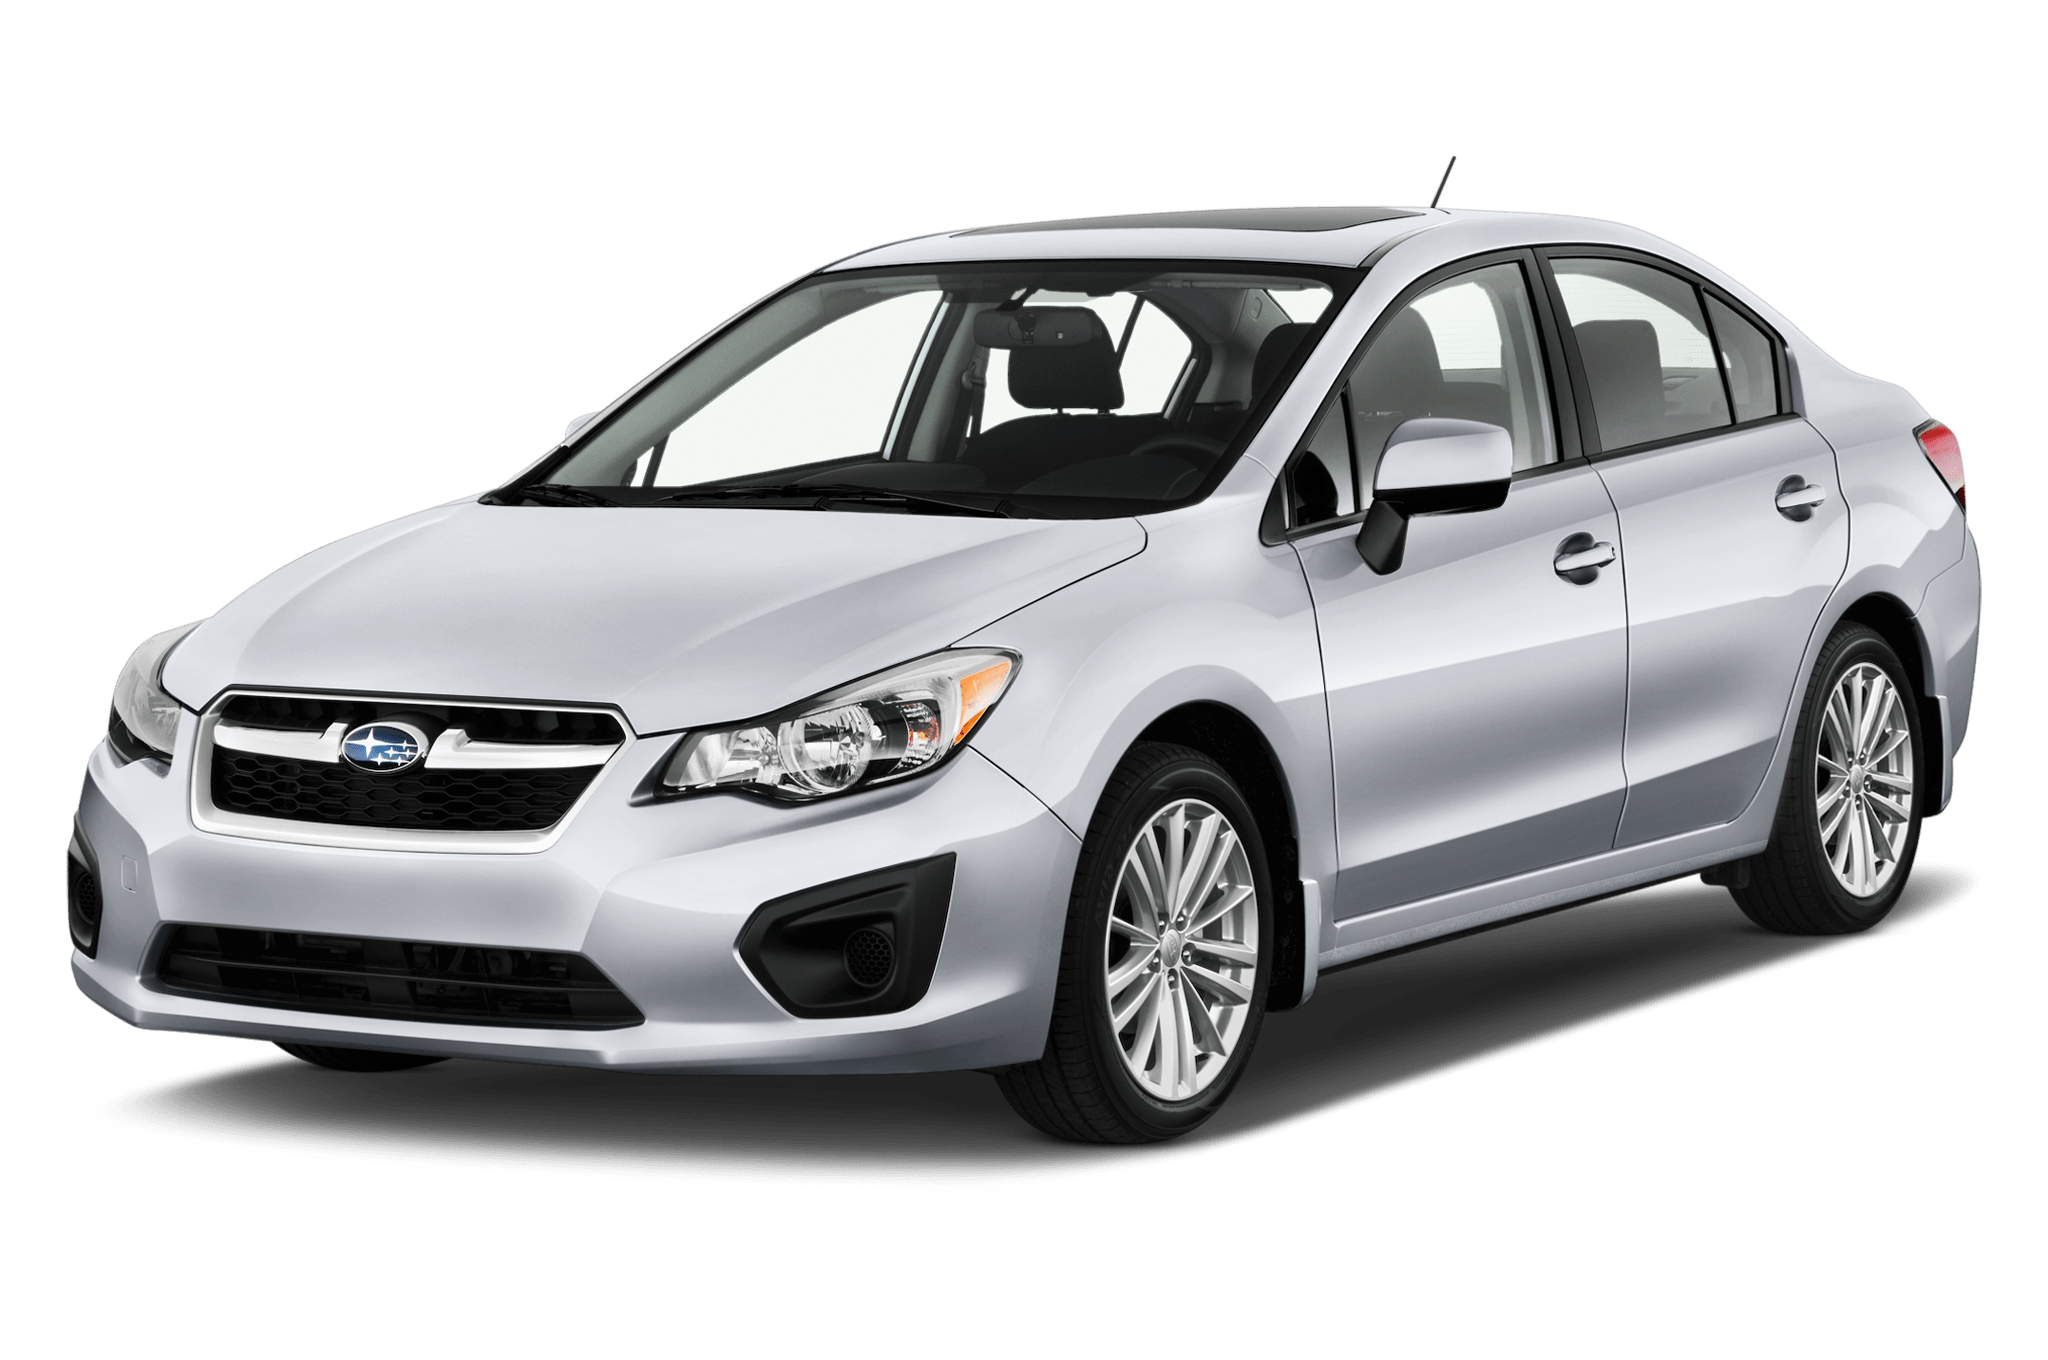 small resolution of 2013 subaru impreza 2 0i pzev sedan interior features msn autos 2014 subaru impreza hatchback sport subaru impreza 2 0i engine diagrams